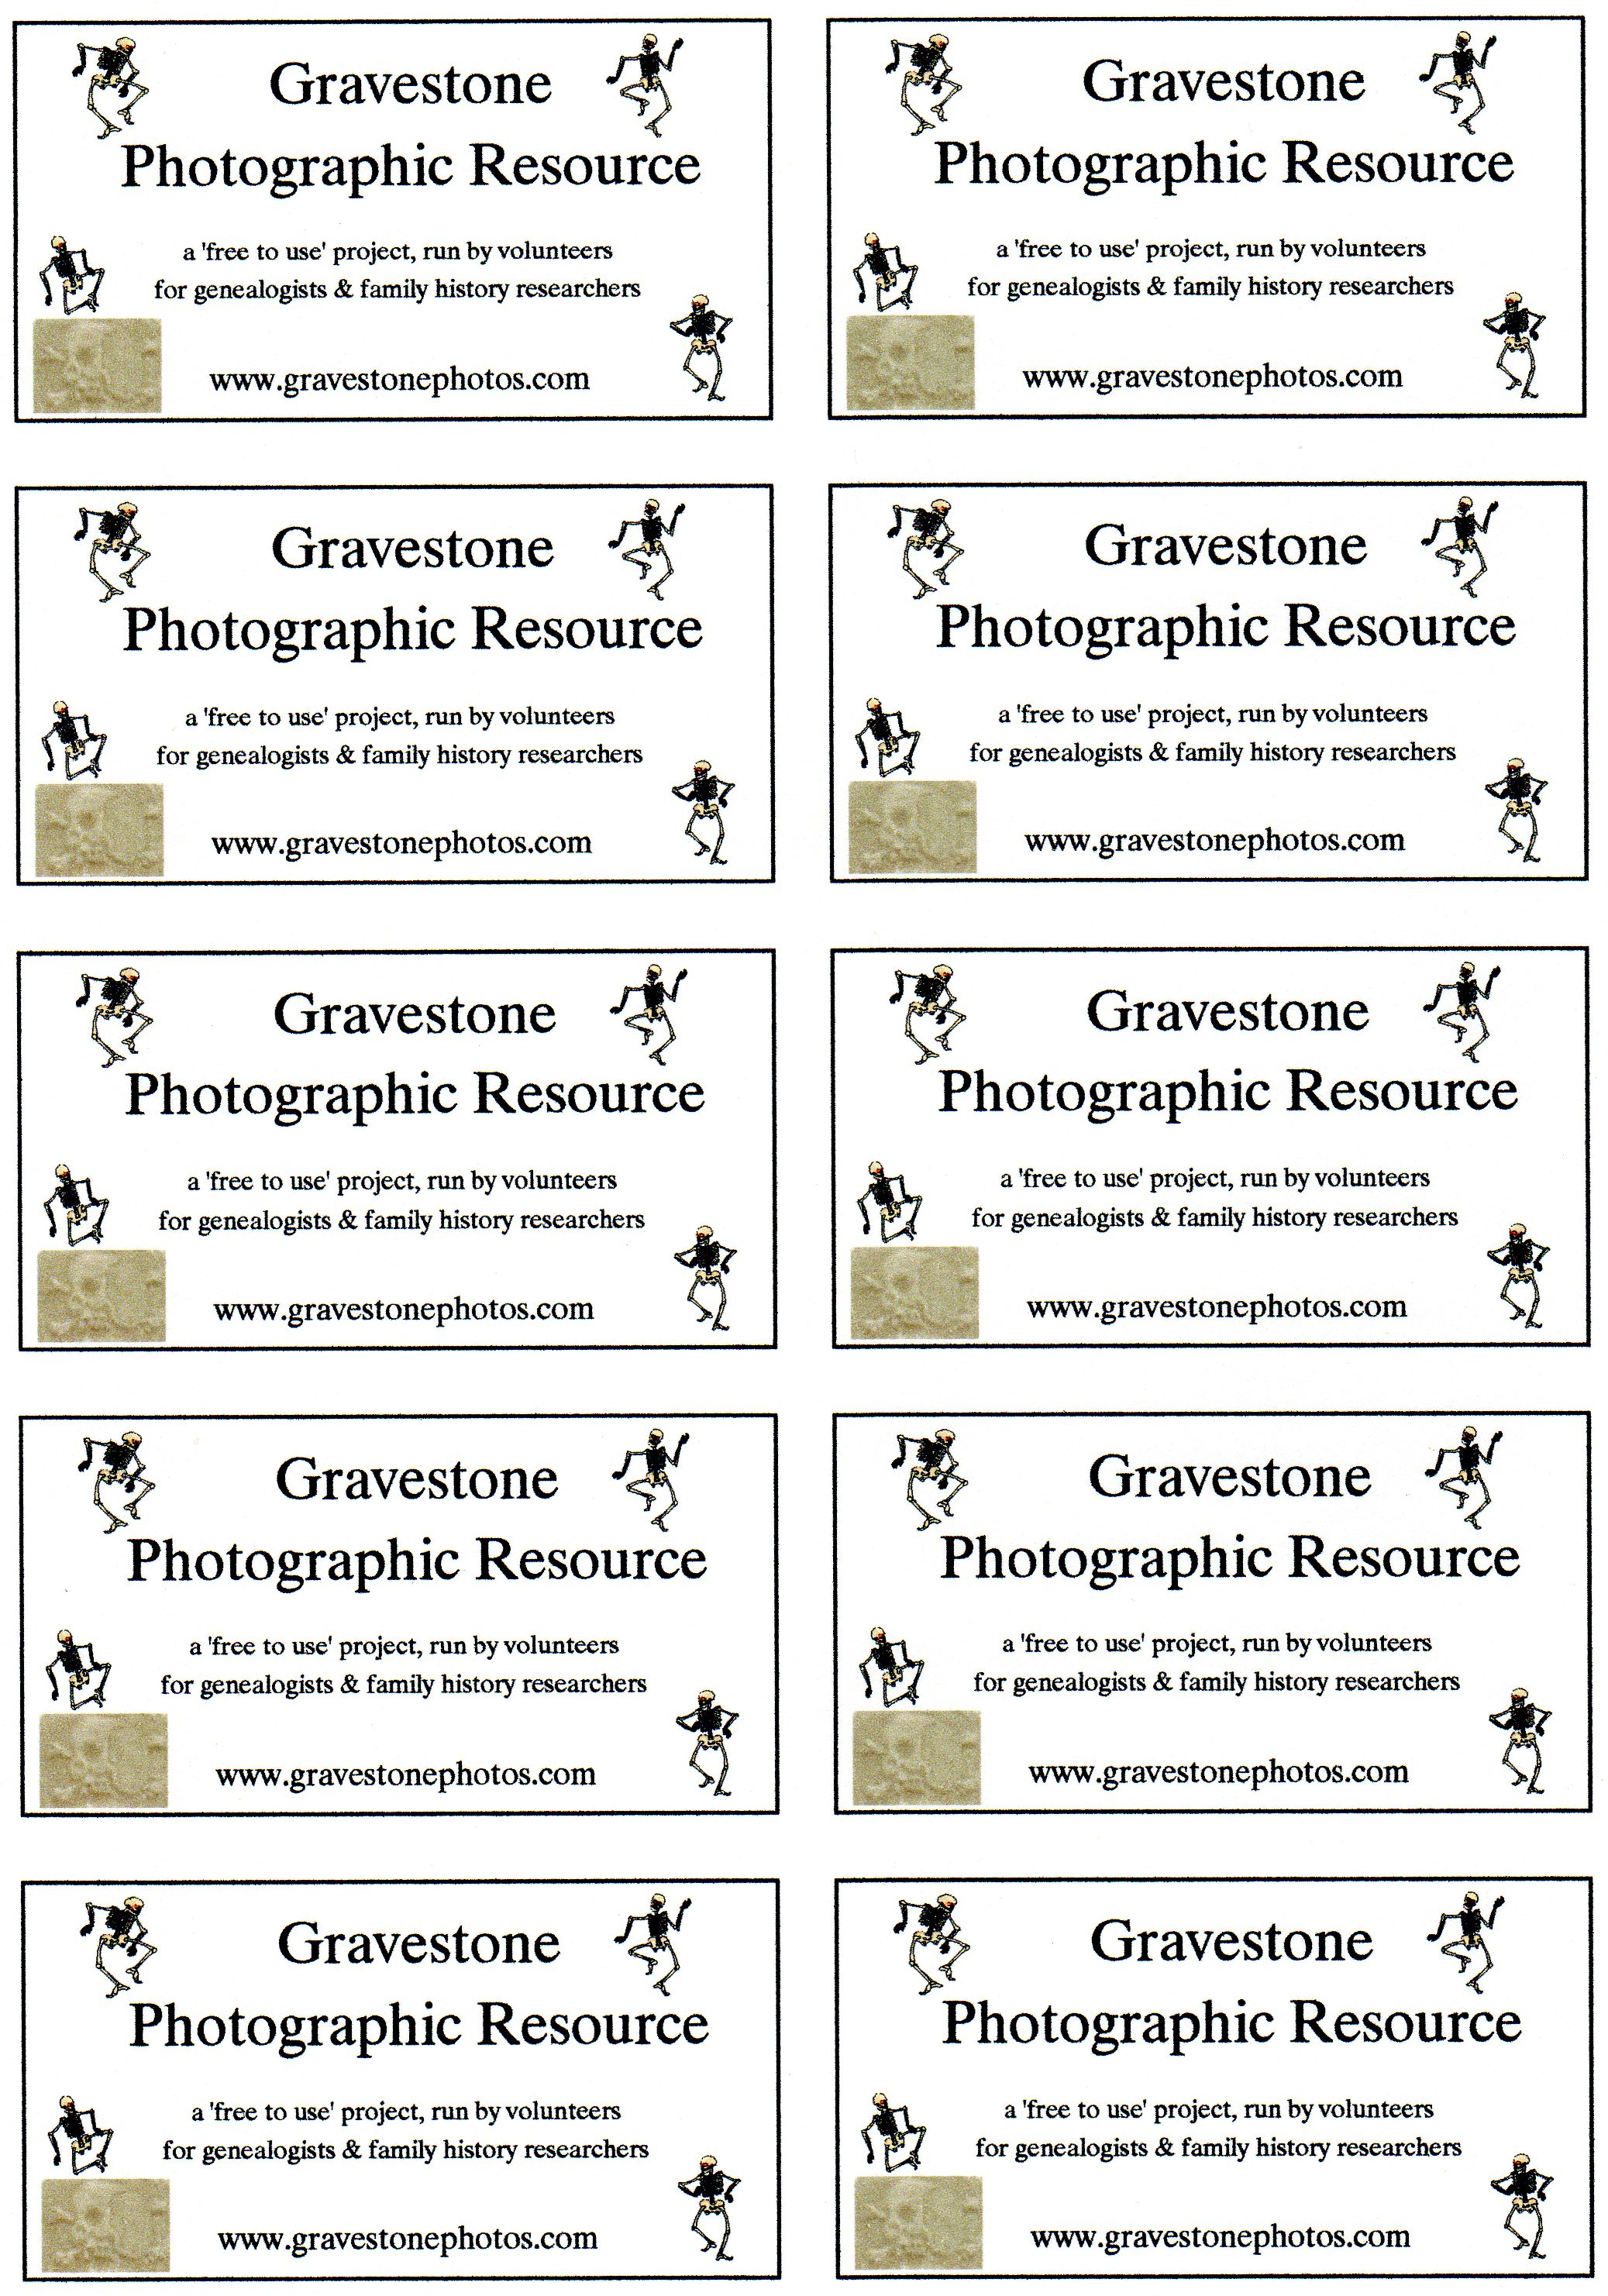 Gravestone photographic resource project downloads gpr details business card cheaphphosting Gallery